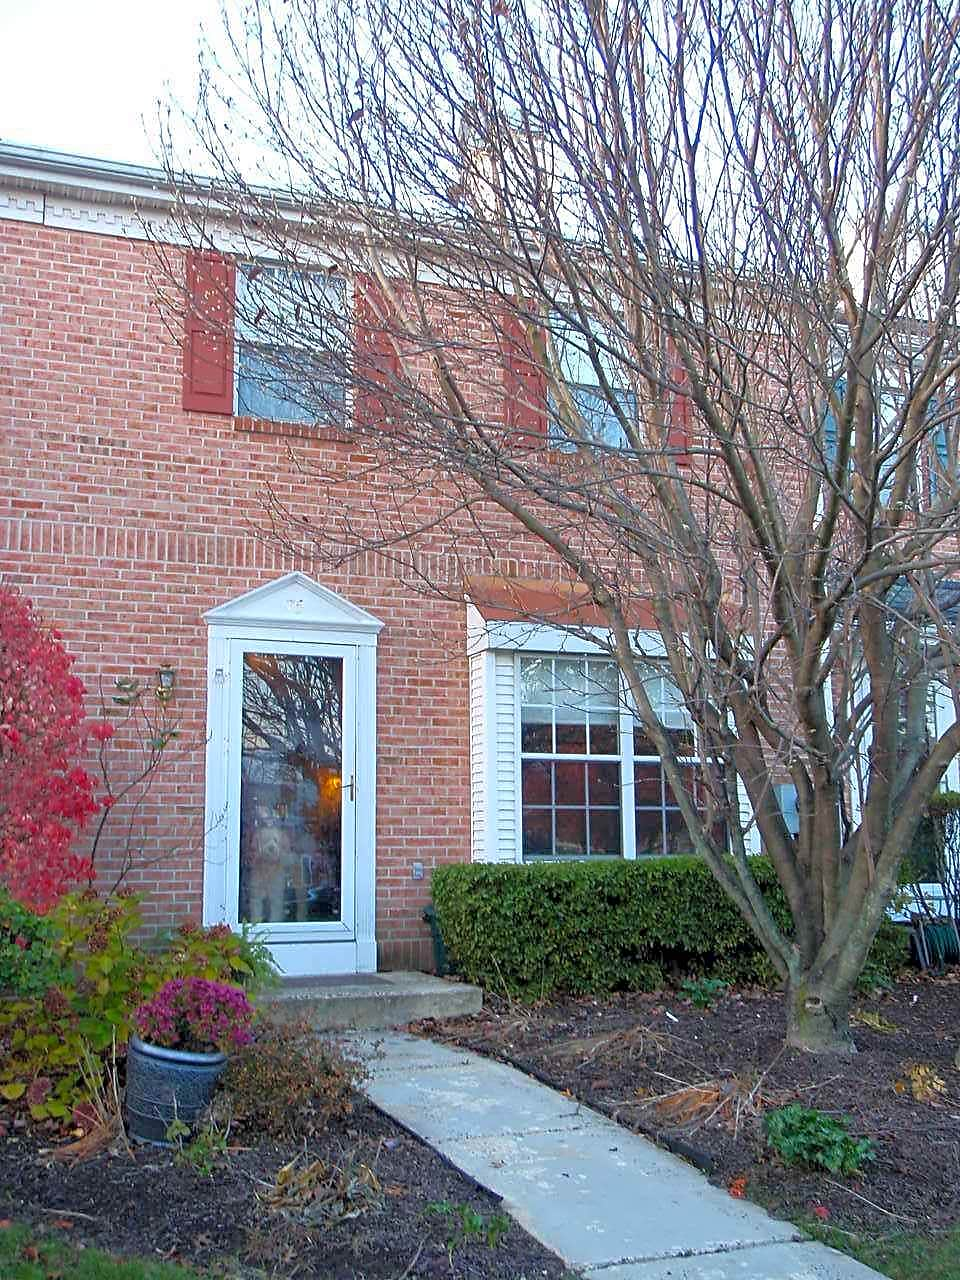 Condo for Rent in Boyertown